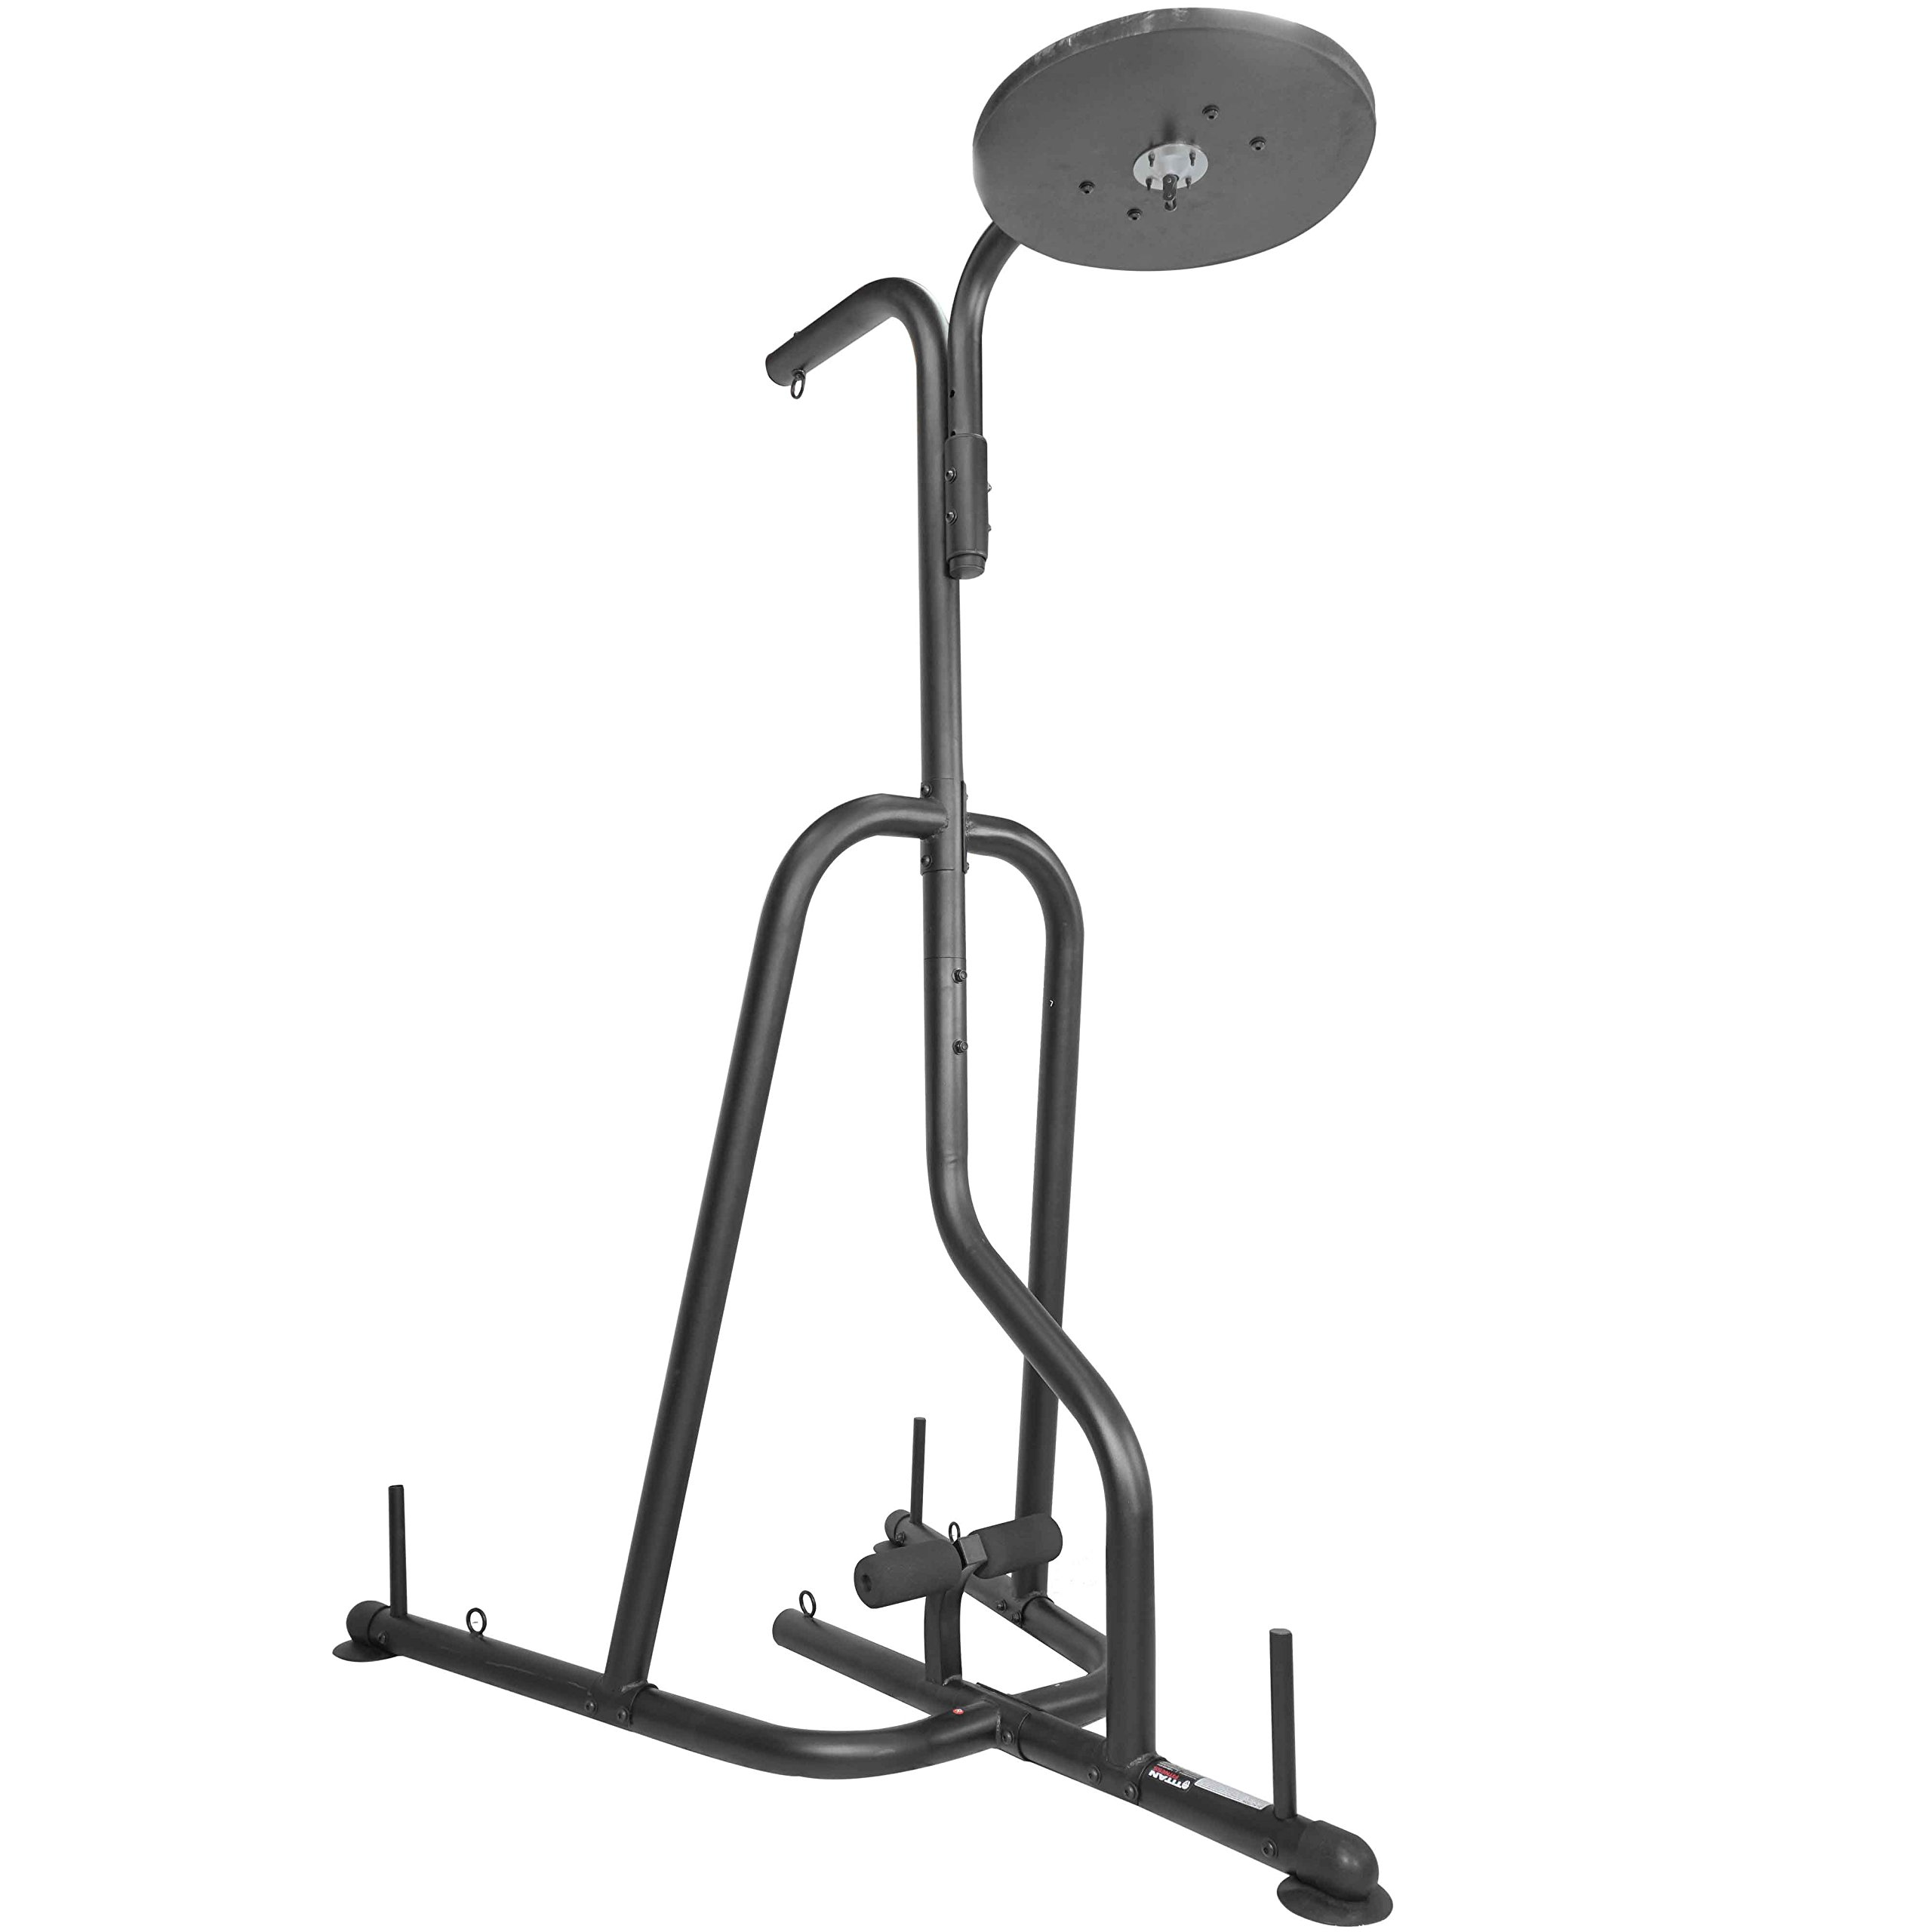 Titan Dual Station Boxing Stand For Speed & Heavy Bag MMA Kick Punching Training by Titan Fitness (Image #4)